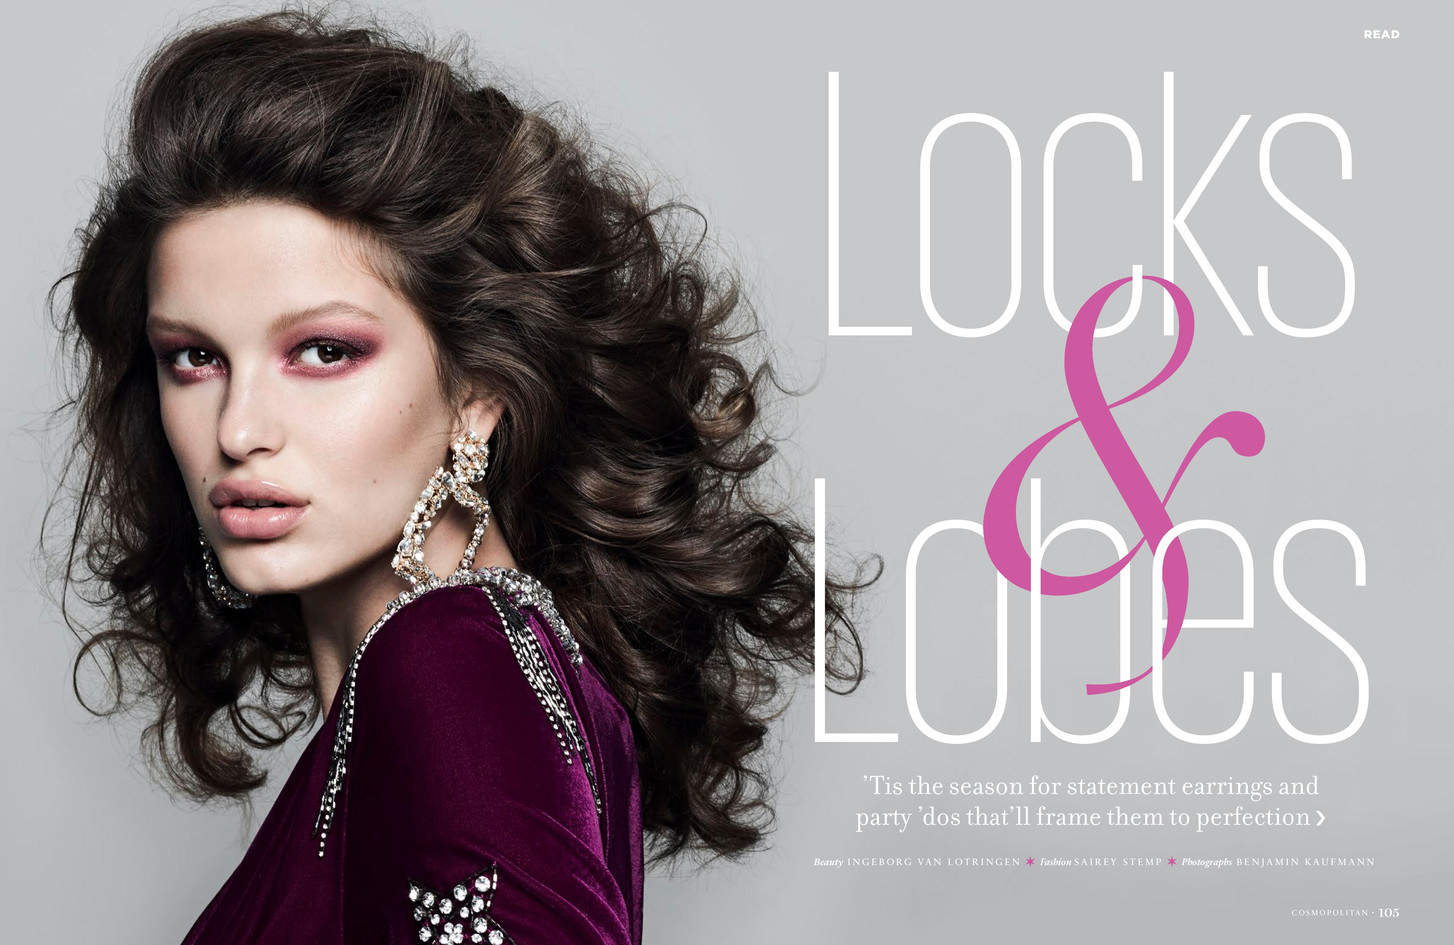 Locks & Lobes – Cosmopolitan